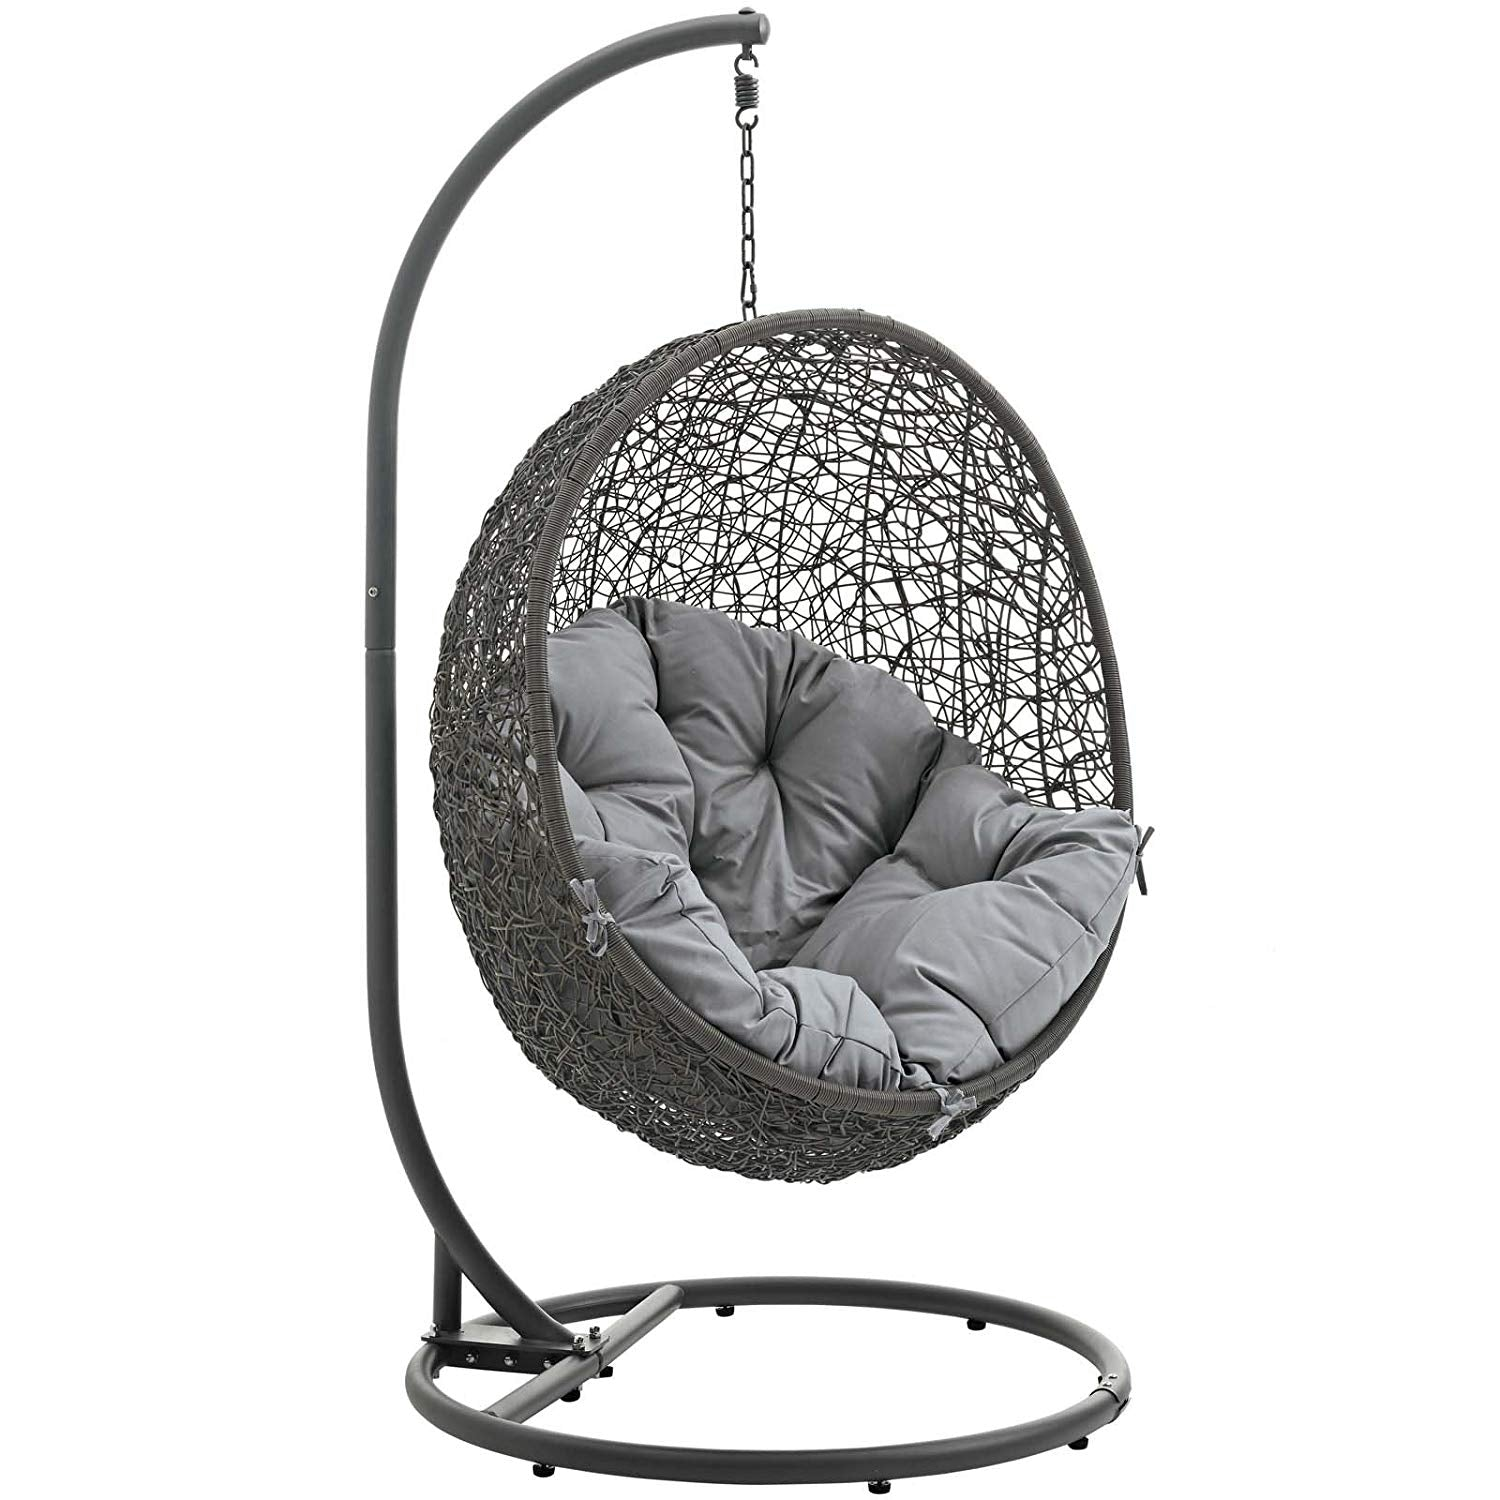 Modway Hide Outdoor Patio Swing Chair, Gray - Modway Hide Outdoor Patio Swing Chair, Gray - Hammock Town